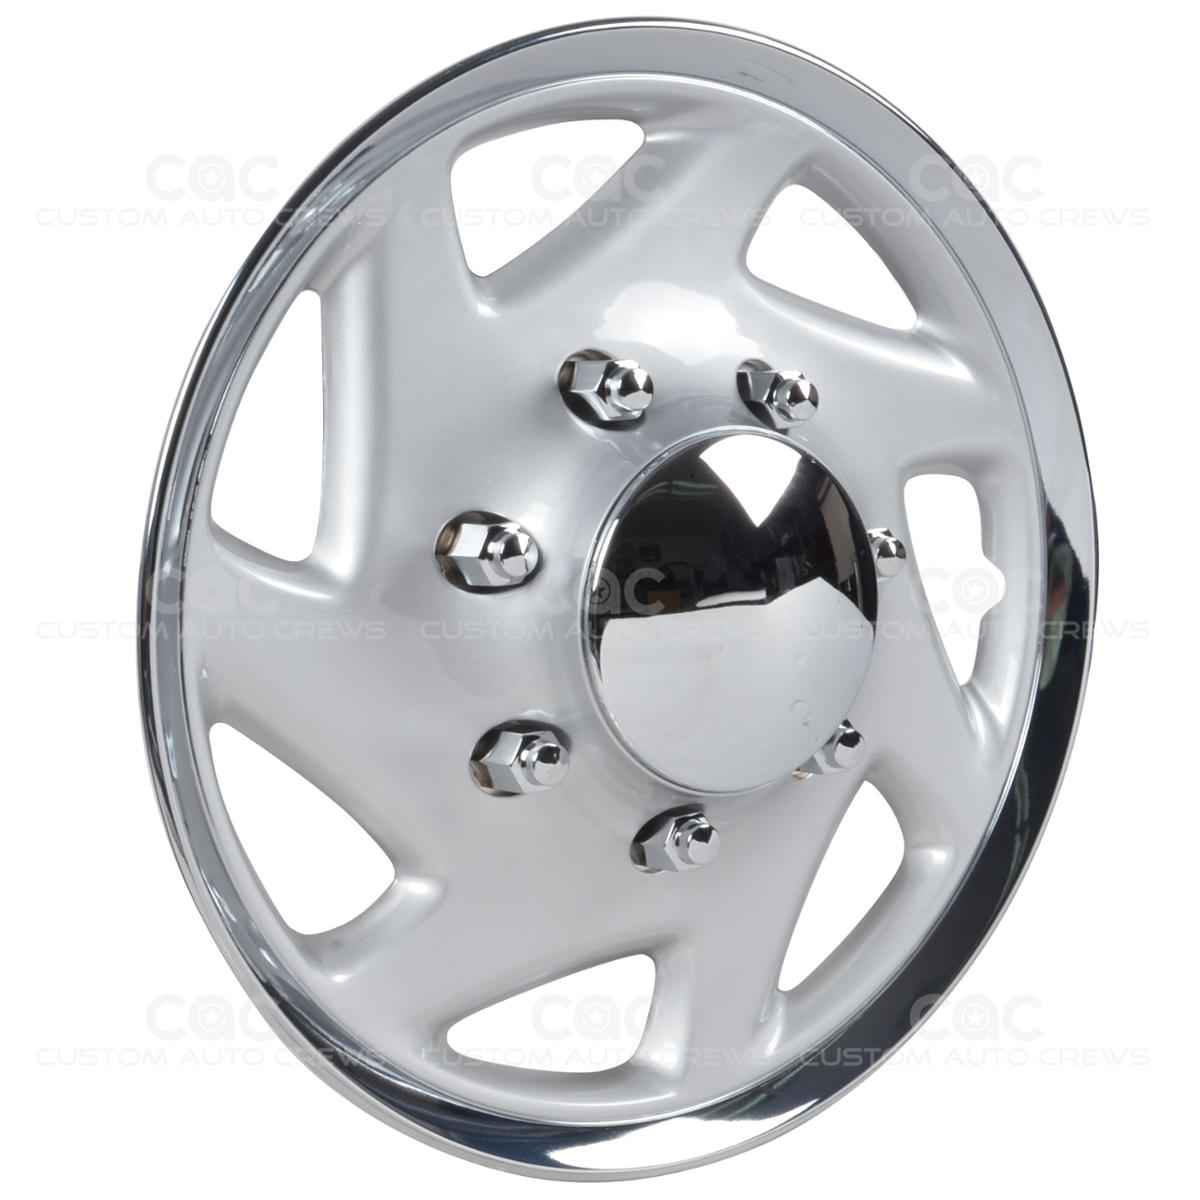 4 pc hubcaps for ford e 150 250 350 truck van 16 full lug abs wheel protection